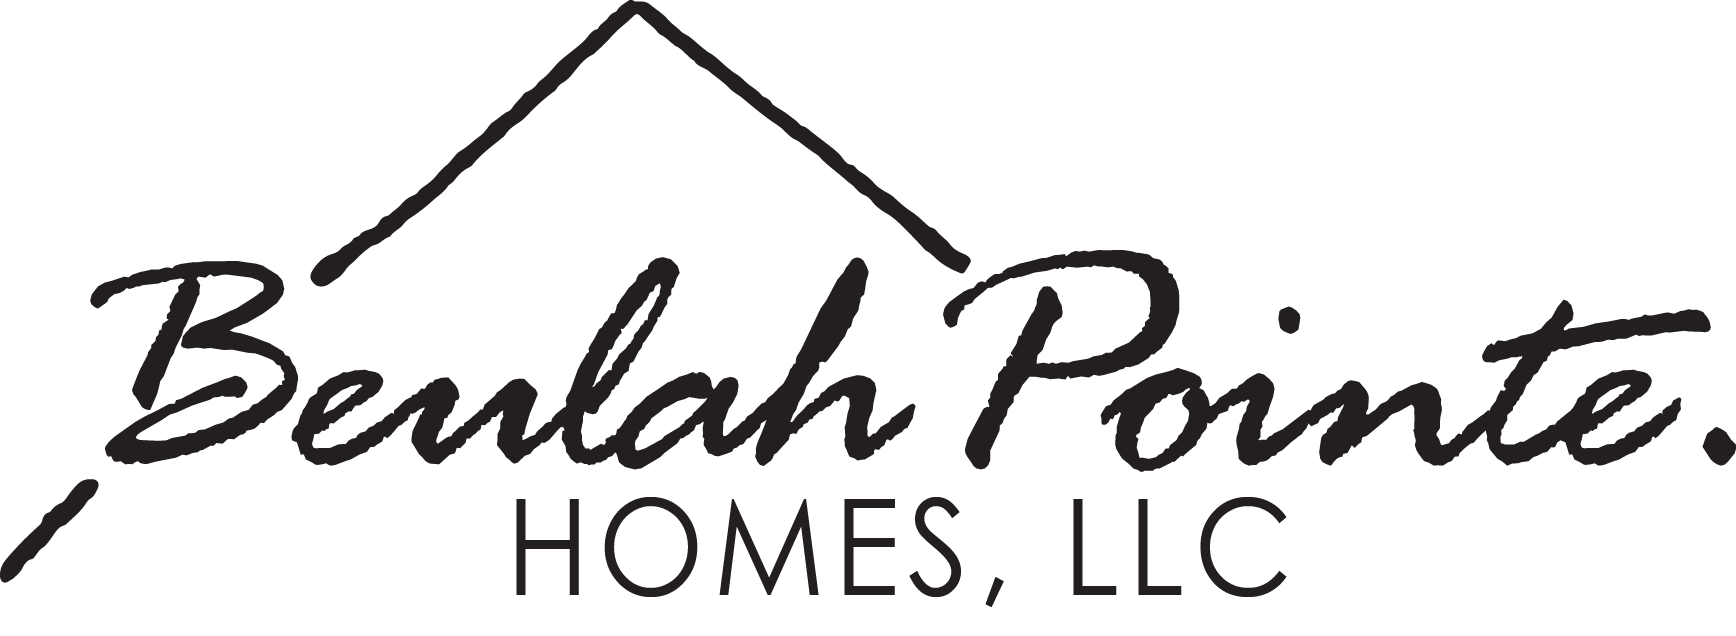 Beulah Pointe Homes, LLC